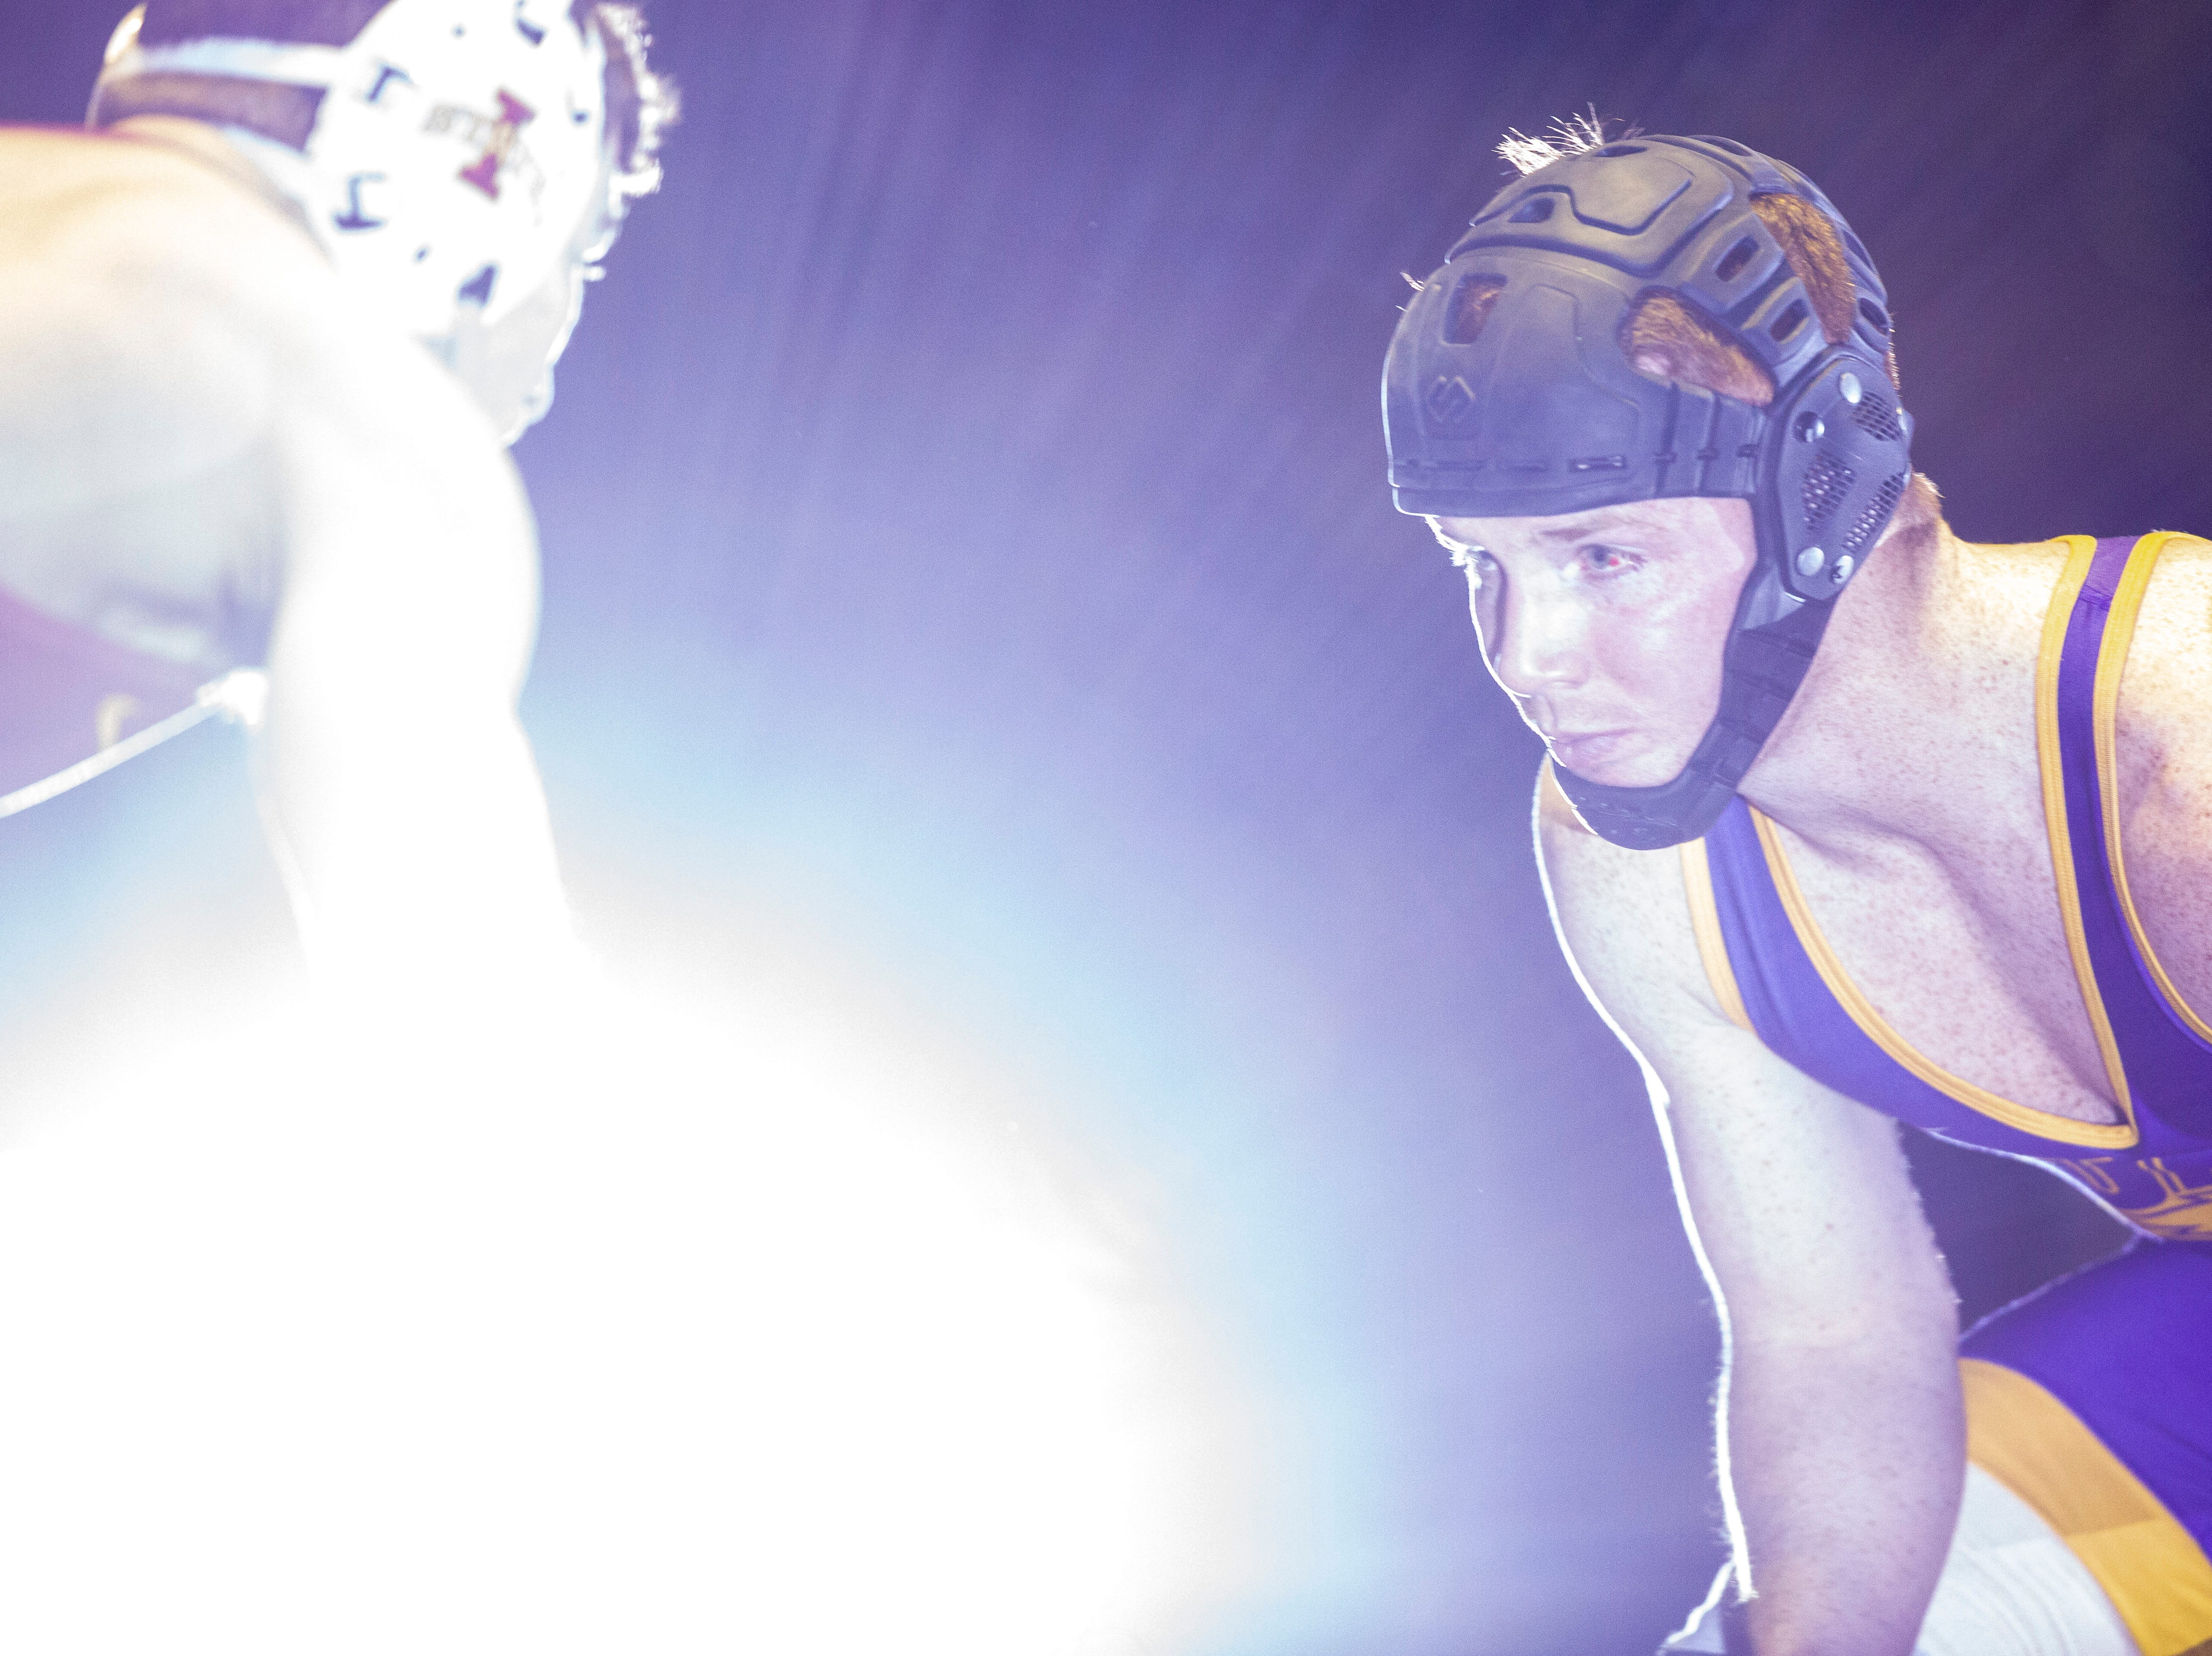 Northern Iowa's Paden Moore is introduced before a match against Iowa State's Chase Straw at 157 during a NCAA Big 12 wrestling dual on Thursday, Feb. 21, 2019 at the West Gymnasium in Cedar Falls, Iowa.